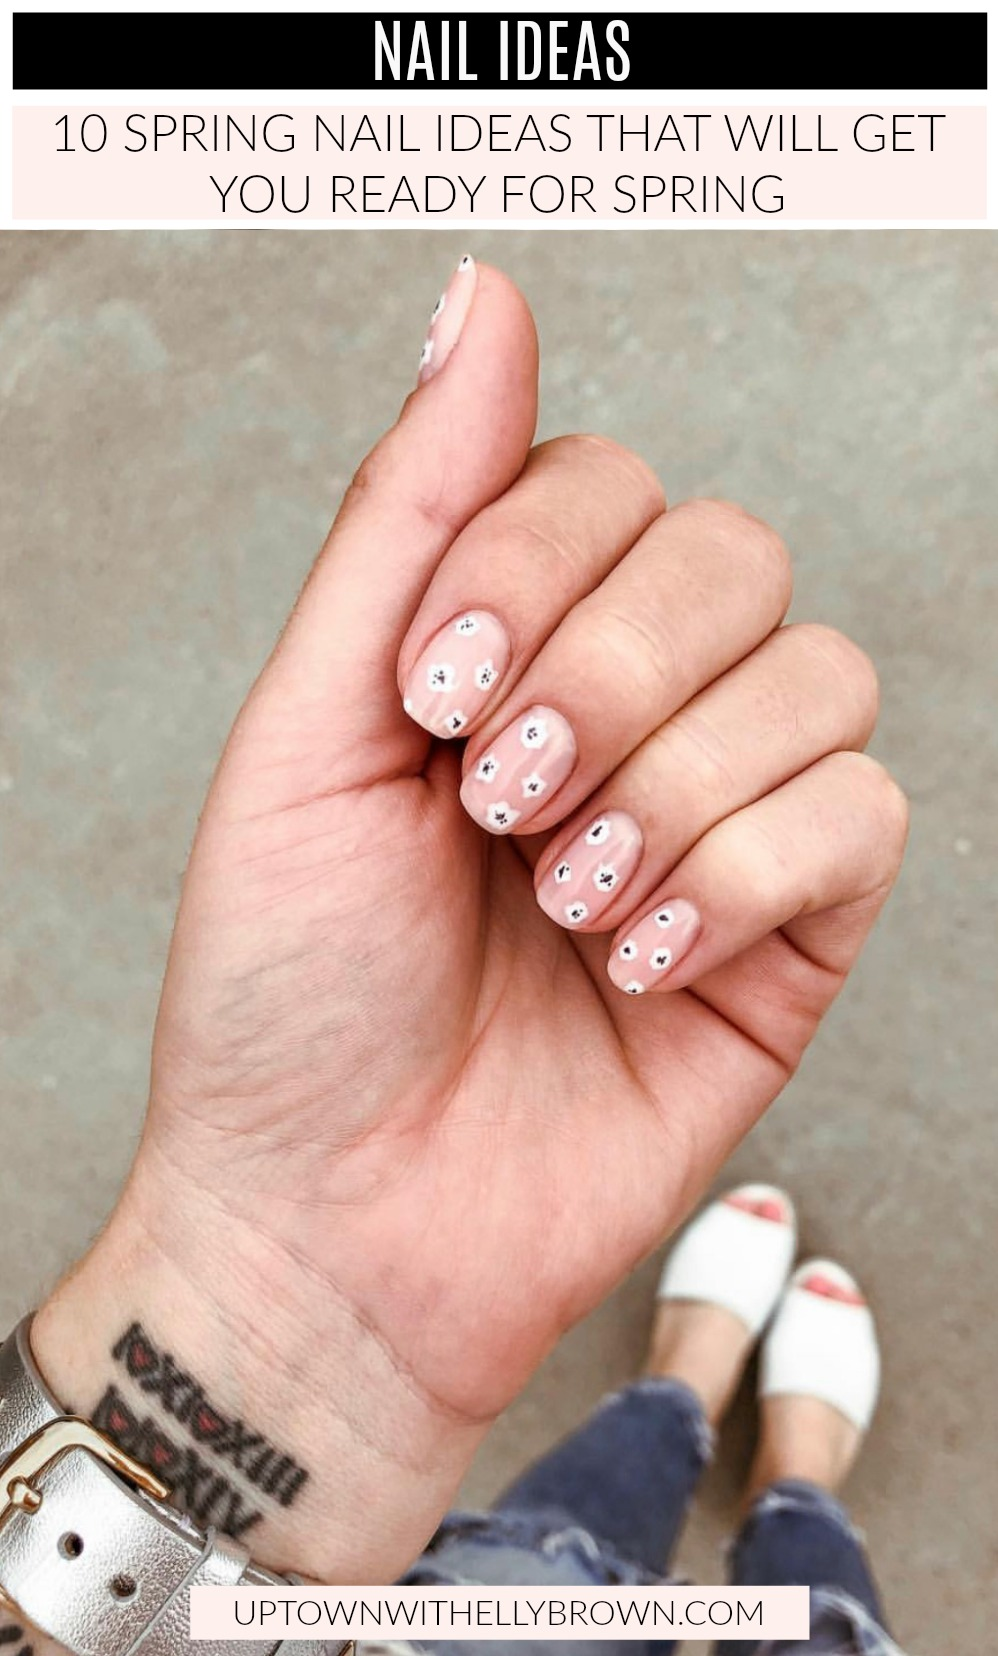 Looking for Spring Nail Ideas? Houston lifestyle blogger shares her top 10 Spring Nail Ideas that will get you ready for Spring!